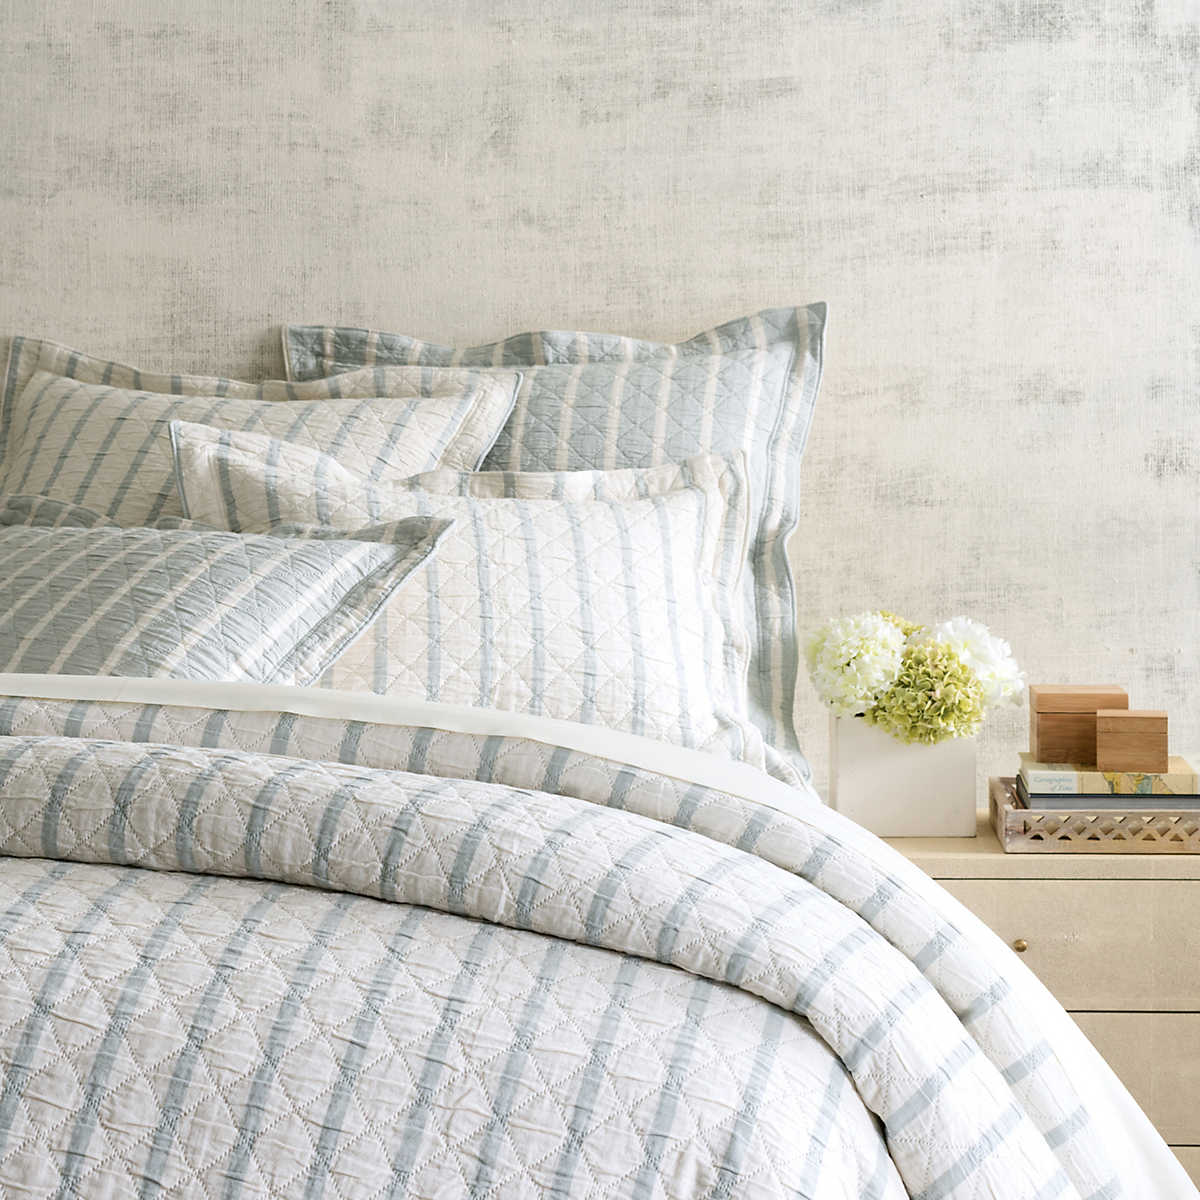 Shop for Pine Cone Hill Bedding at Exotic Home Coastal Outlet in Virginia Beach and Norfolk, VA, and The Outer Banks, NC.